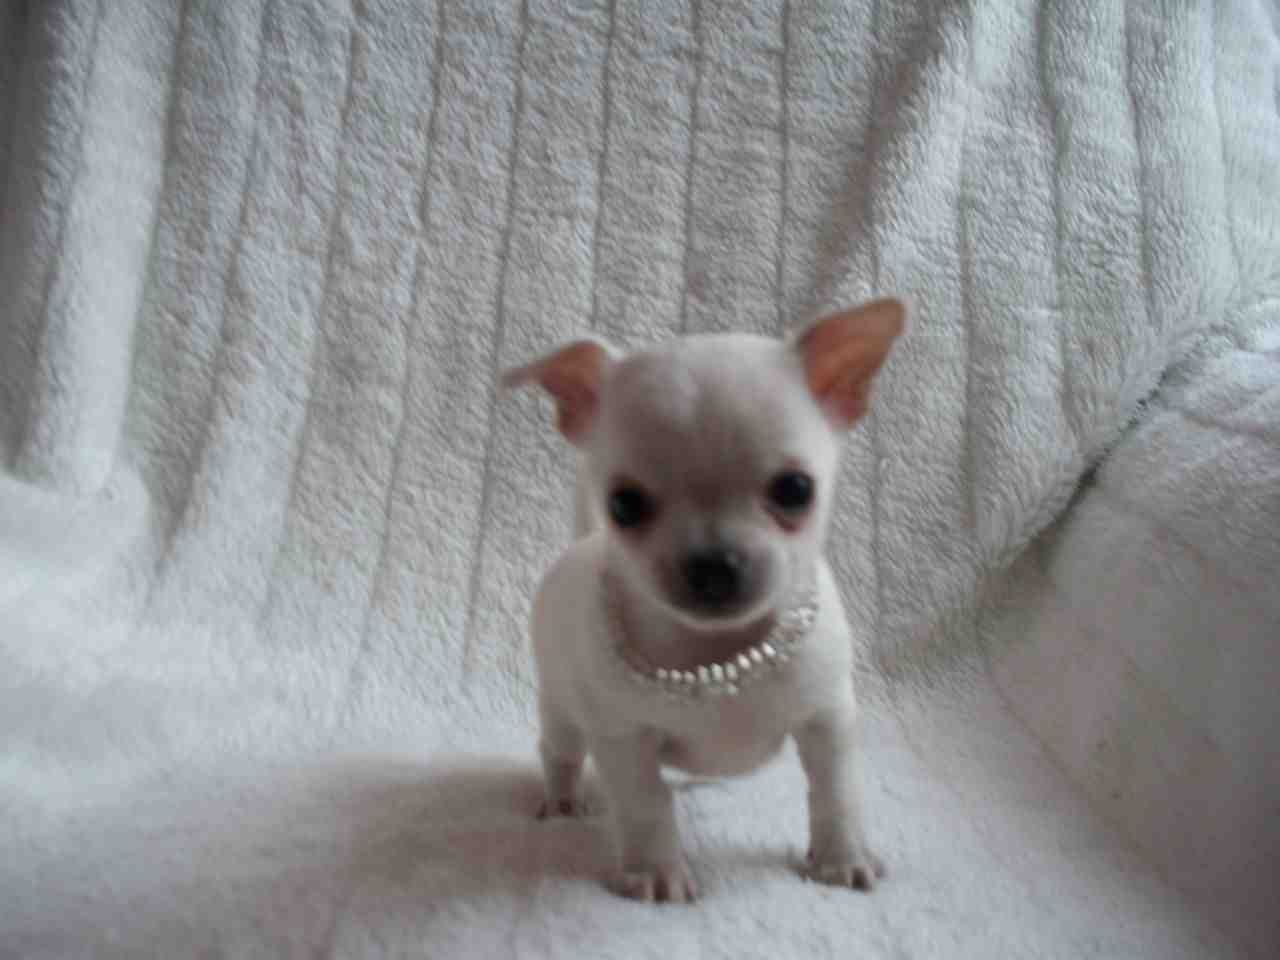 Teacup Chihuahua Puppies Manchester Greater Manchester Teacup Chihuahua Teacup Chihuahua Puppies Chihuahua Puppies